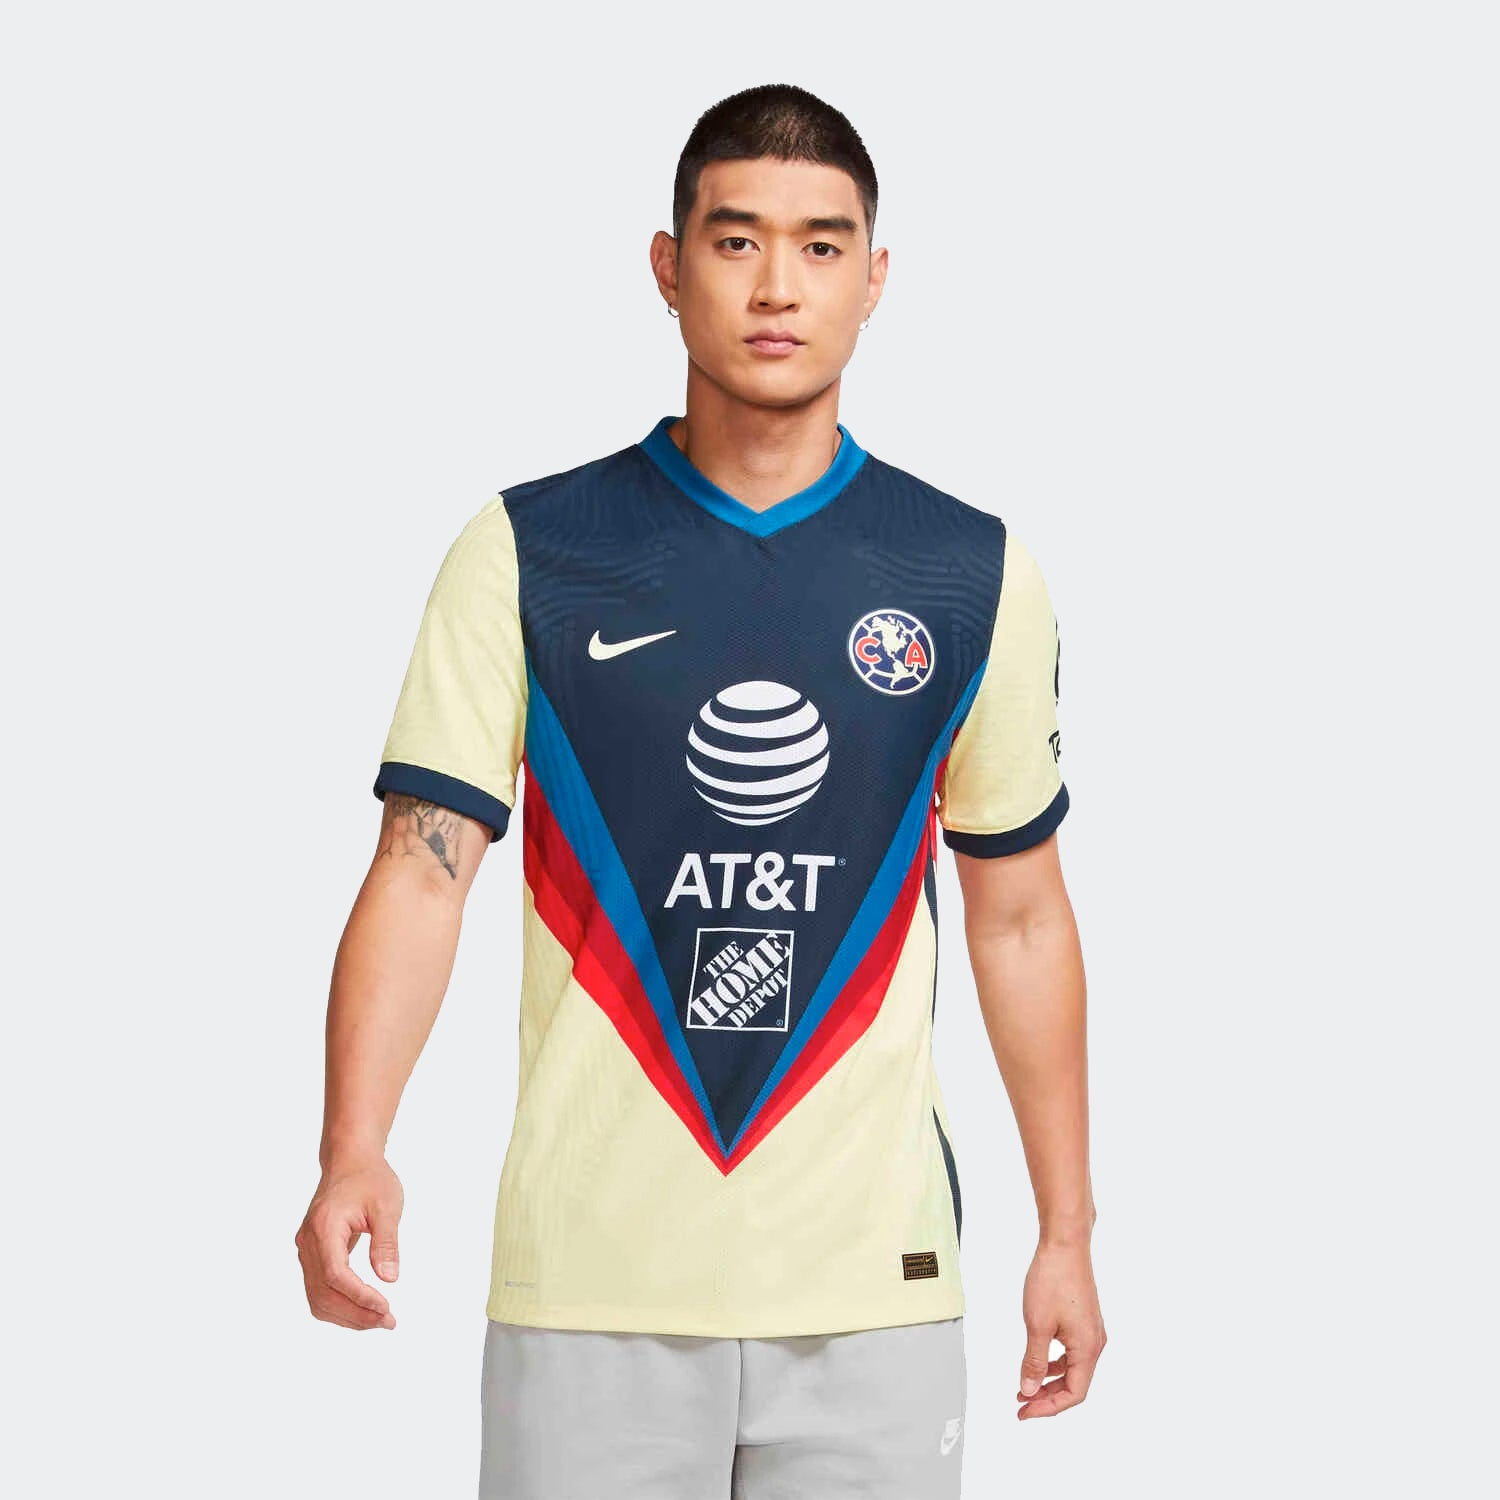 Club America Autentica Playera Casa 20-21 | Club America Authentic Home Jersey 20-21